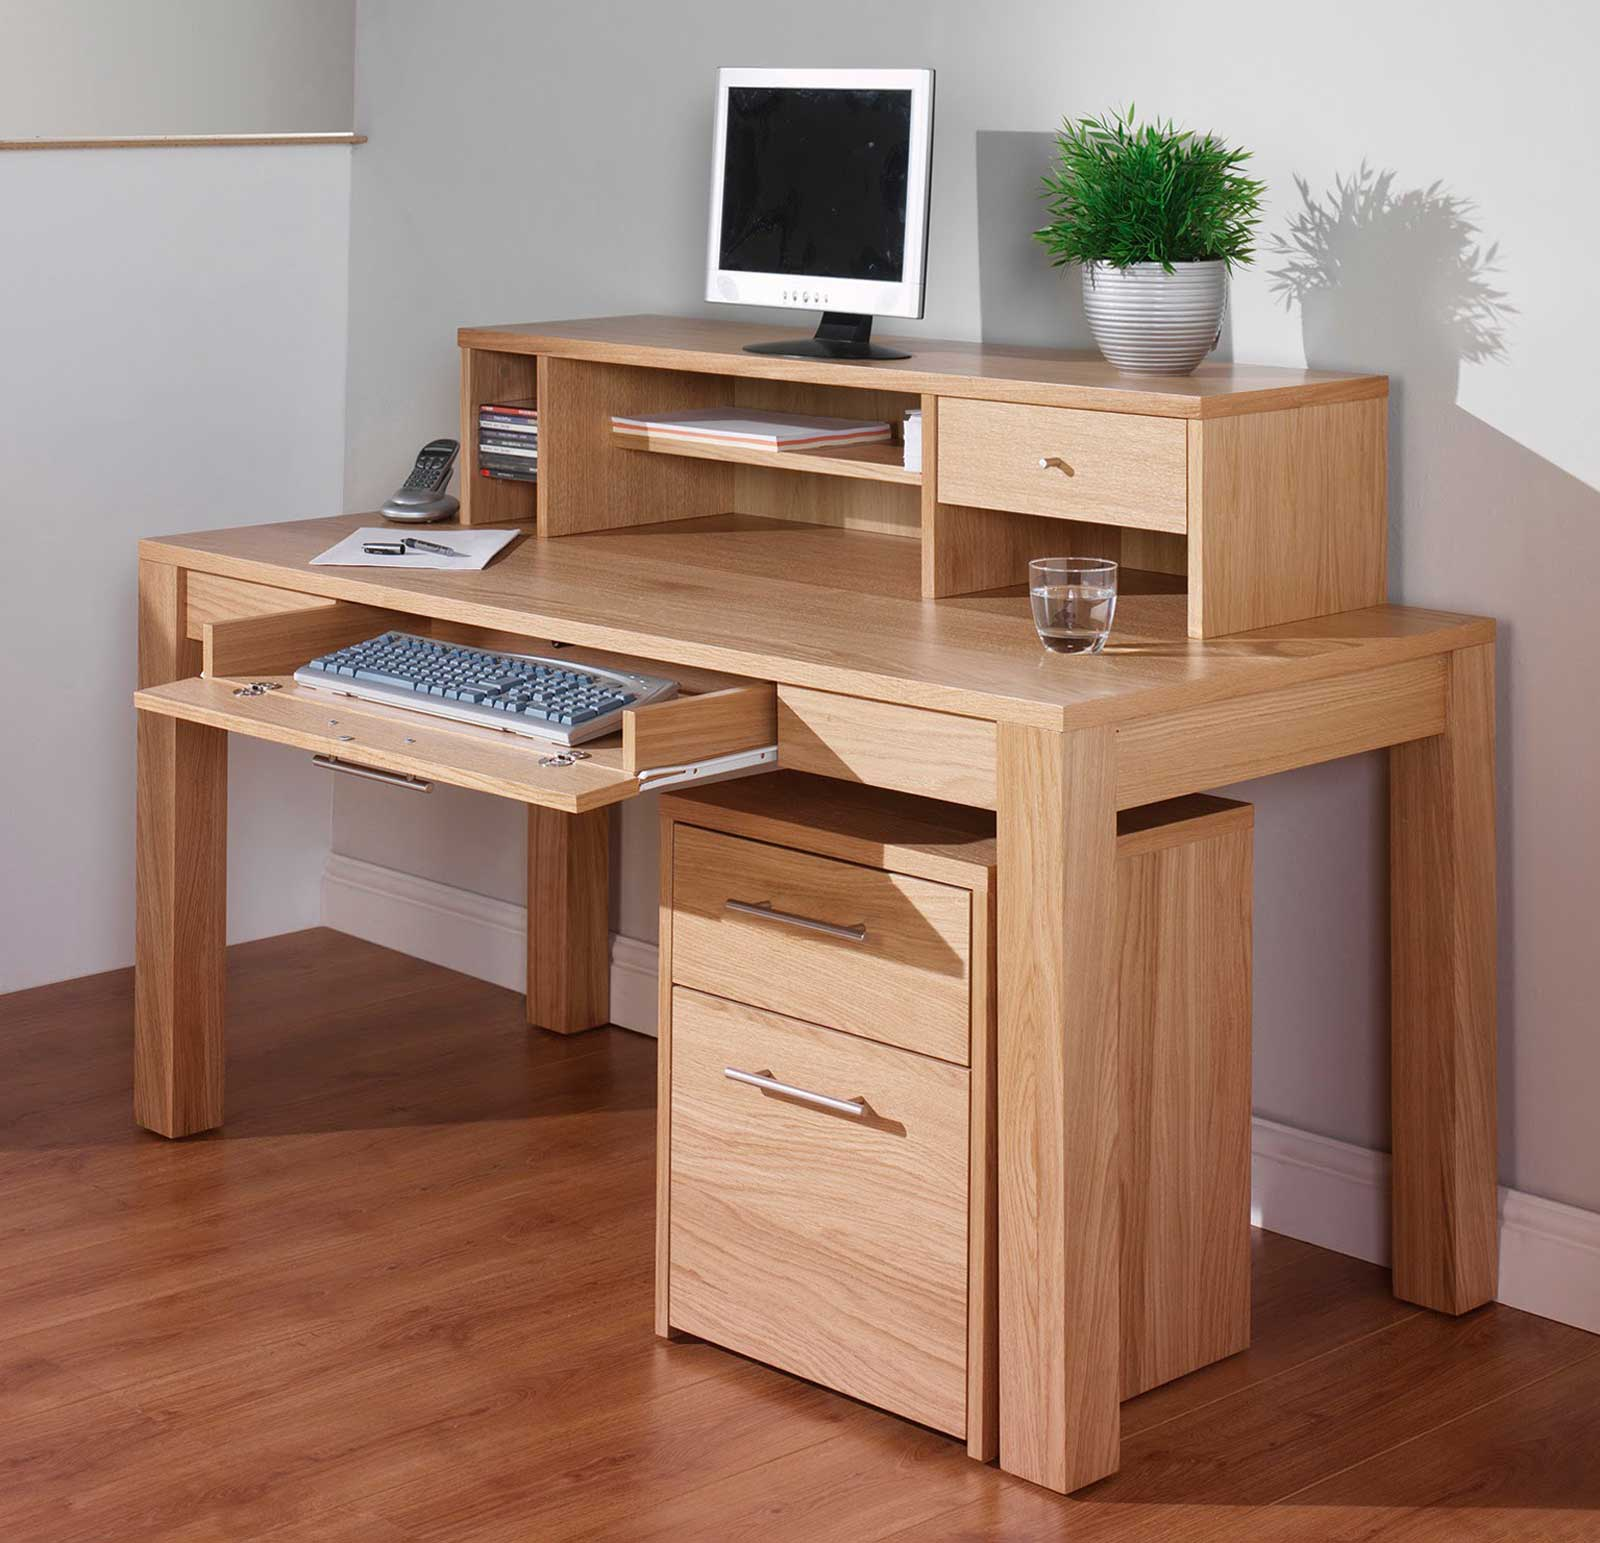 Terrific Homemade Computer Desk Pictures Design Ideas - Golime.co